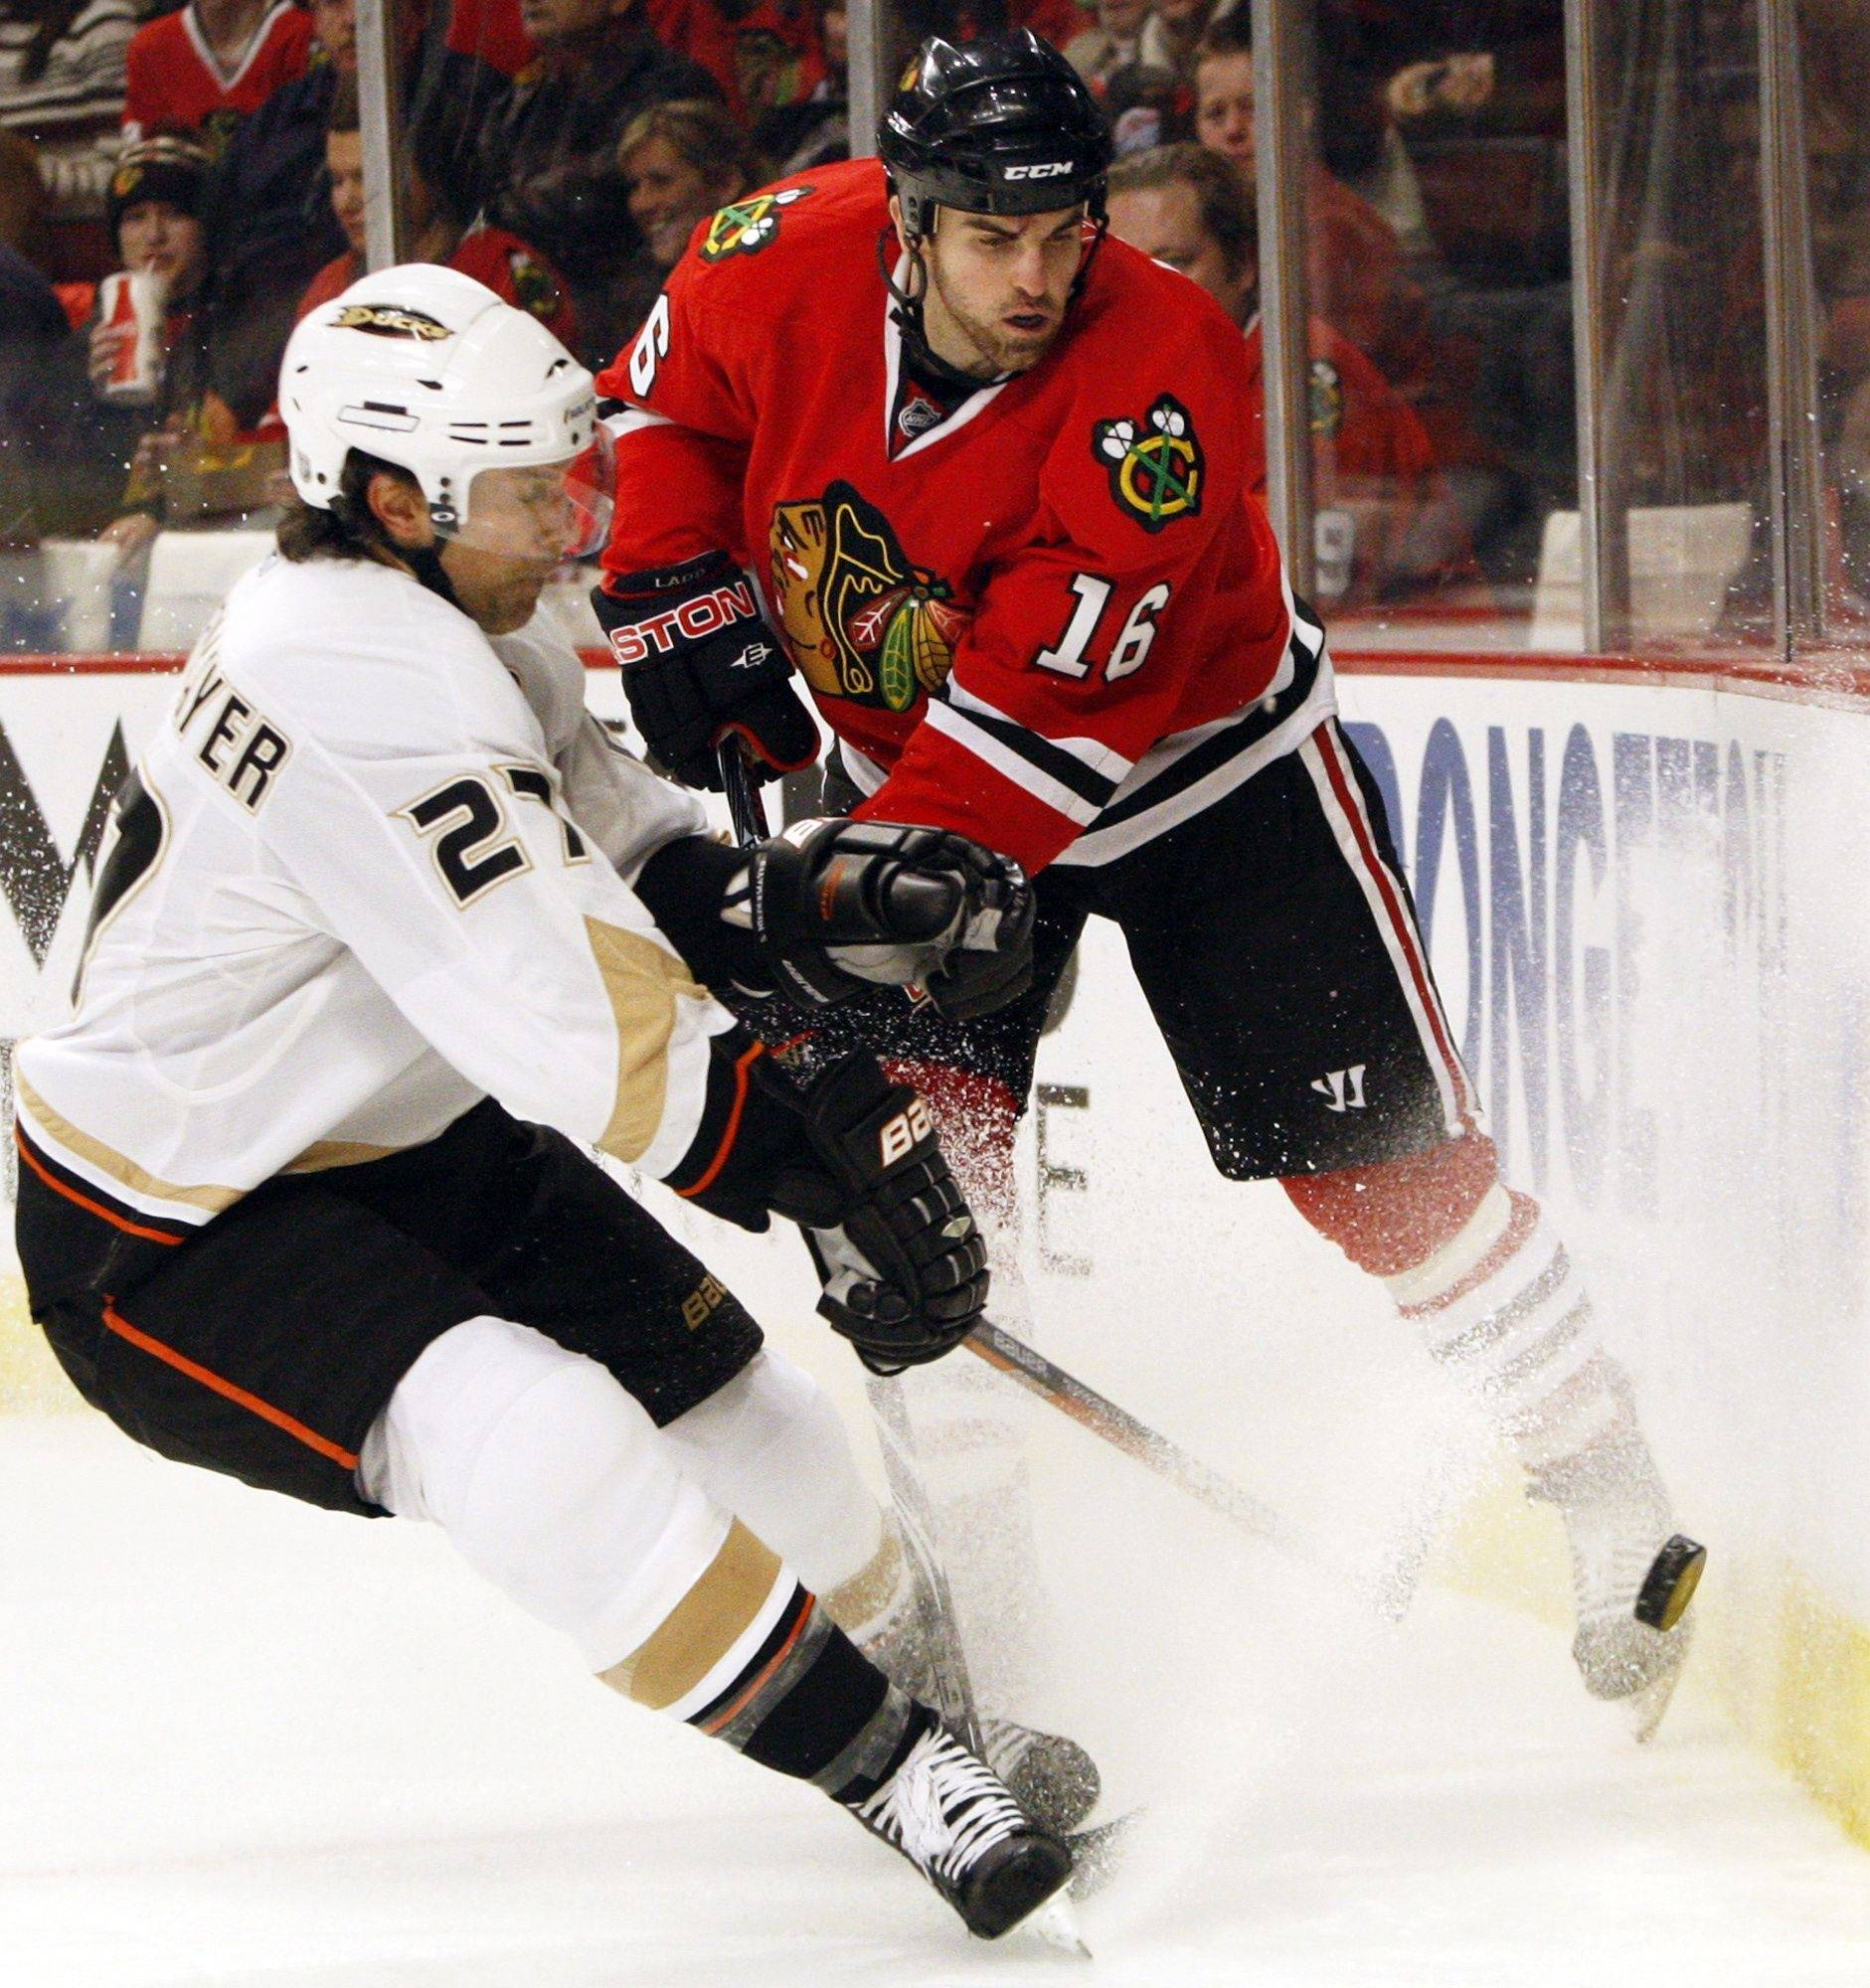 A lot of playoff contenders in the NHL could use the services of Anaheim's Scott Niedermayer, left, who battled Andrew Ladd for the puck during a game in Chicago last month.